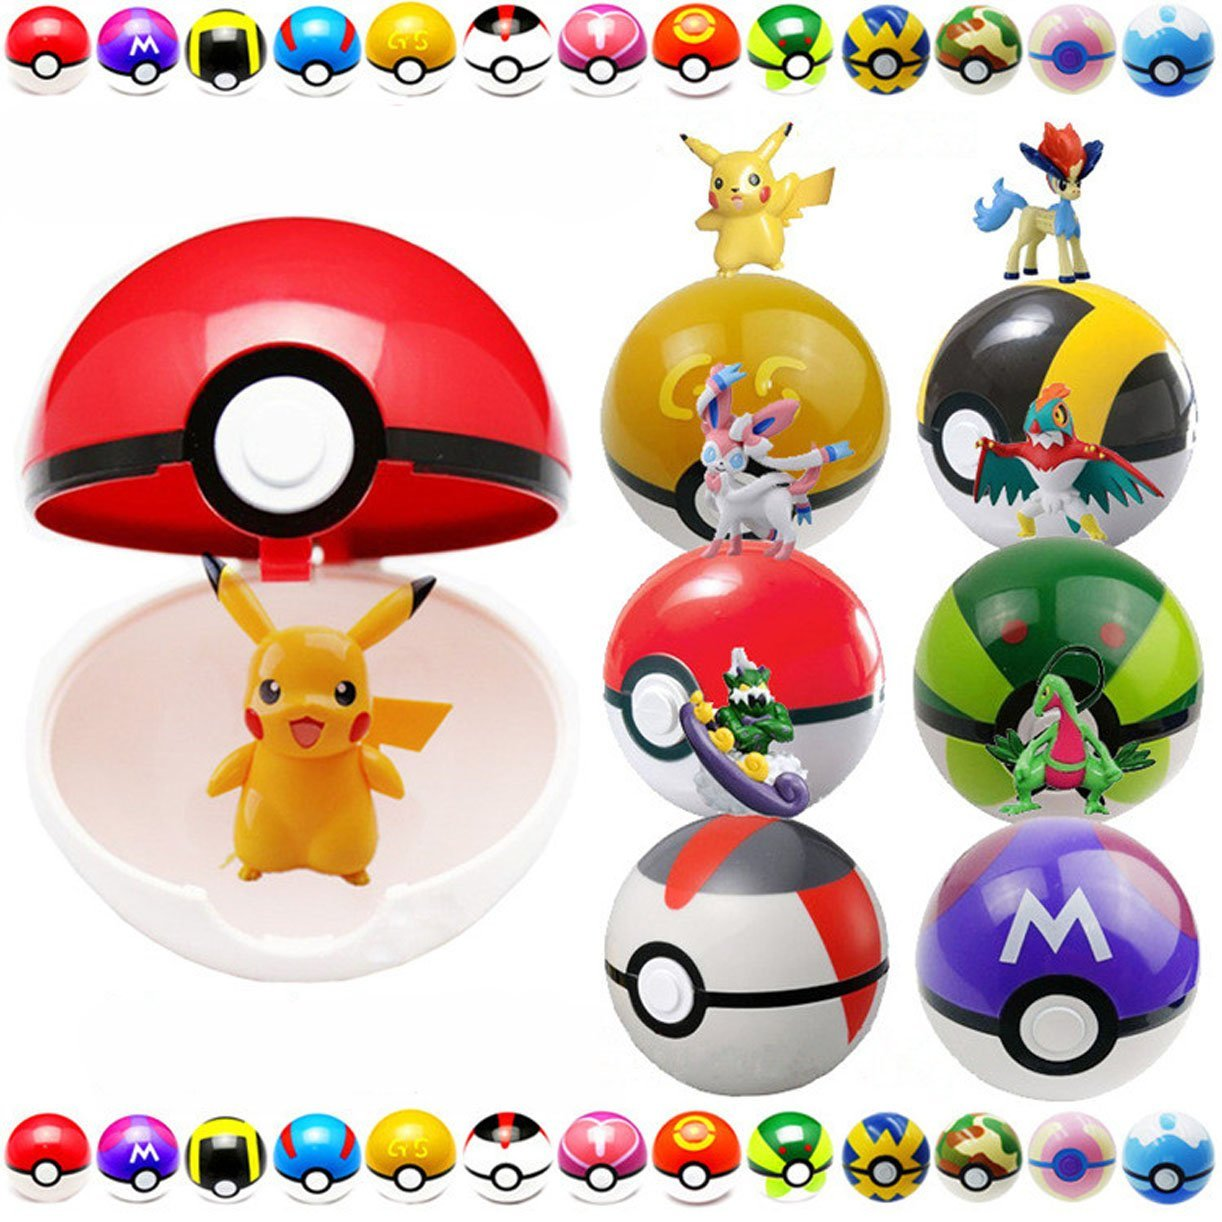 Pokemon Go Pokeball 9Pcs With 9 Pokemon Figure and 1 Drawstring Bag